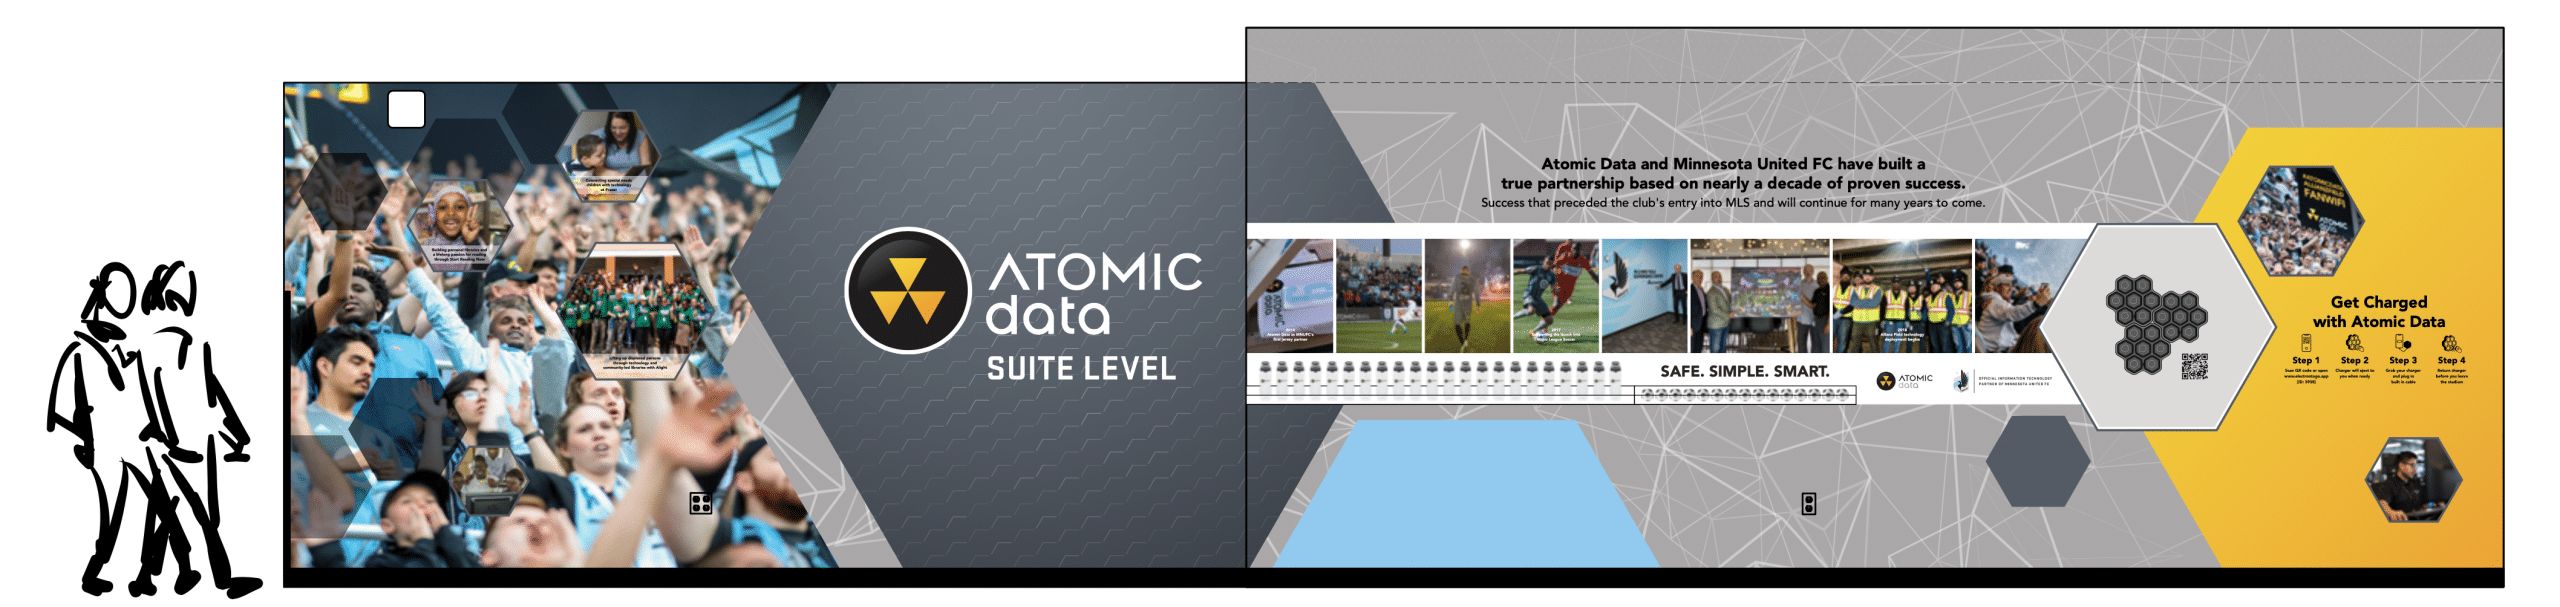 Mockup of Atomic Data Suite Level brand wall